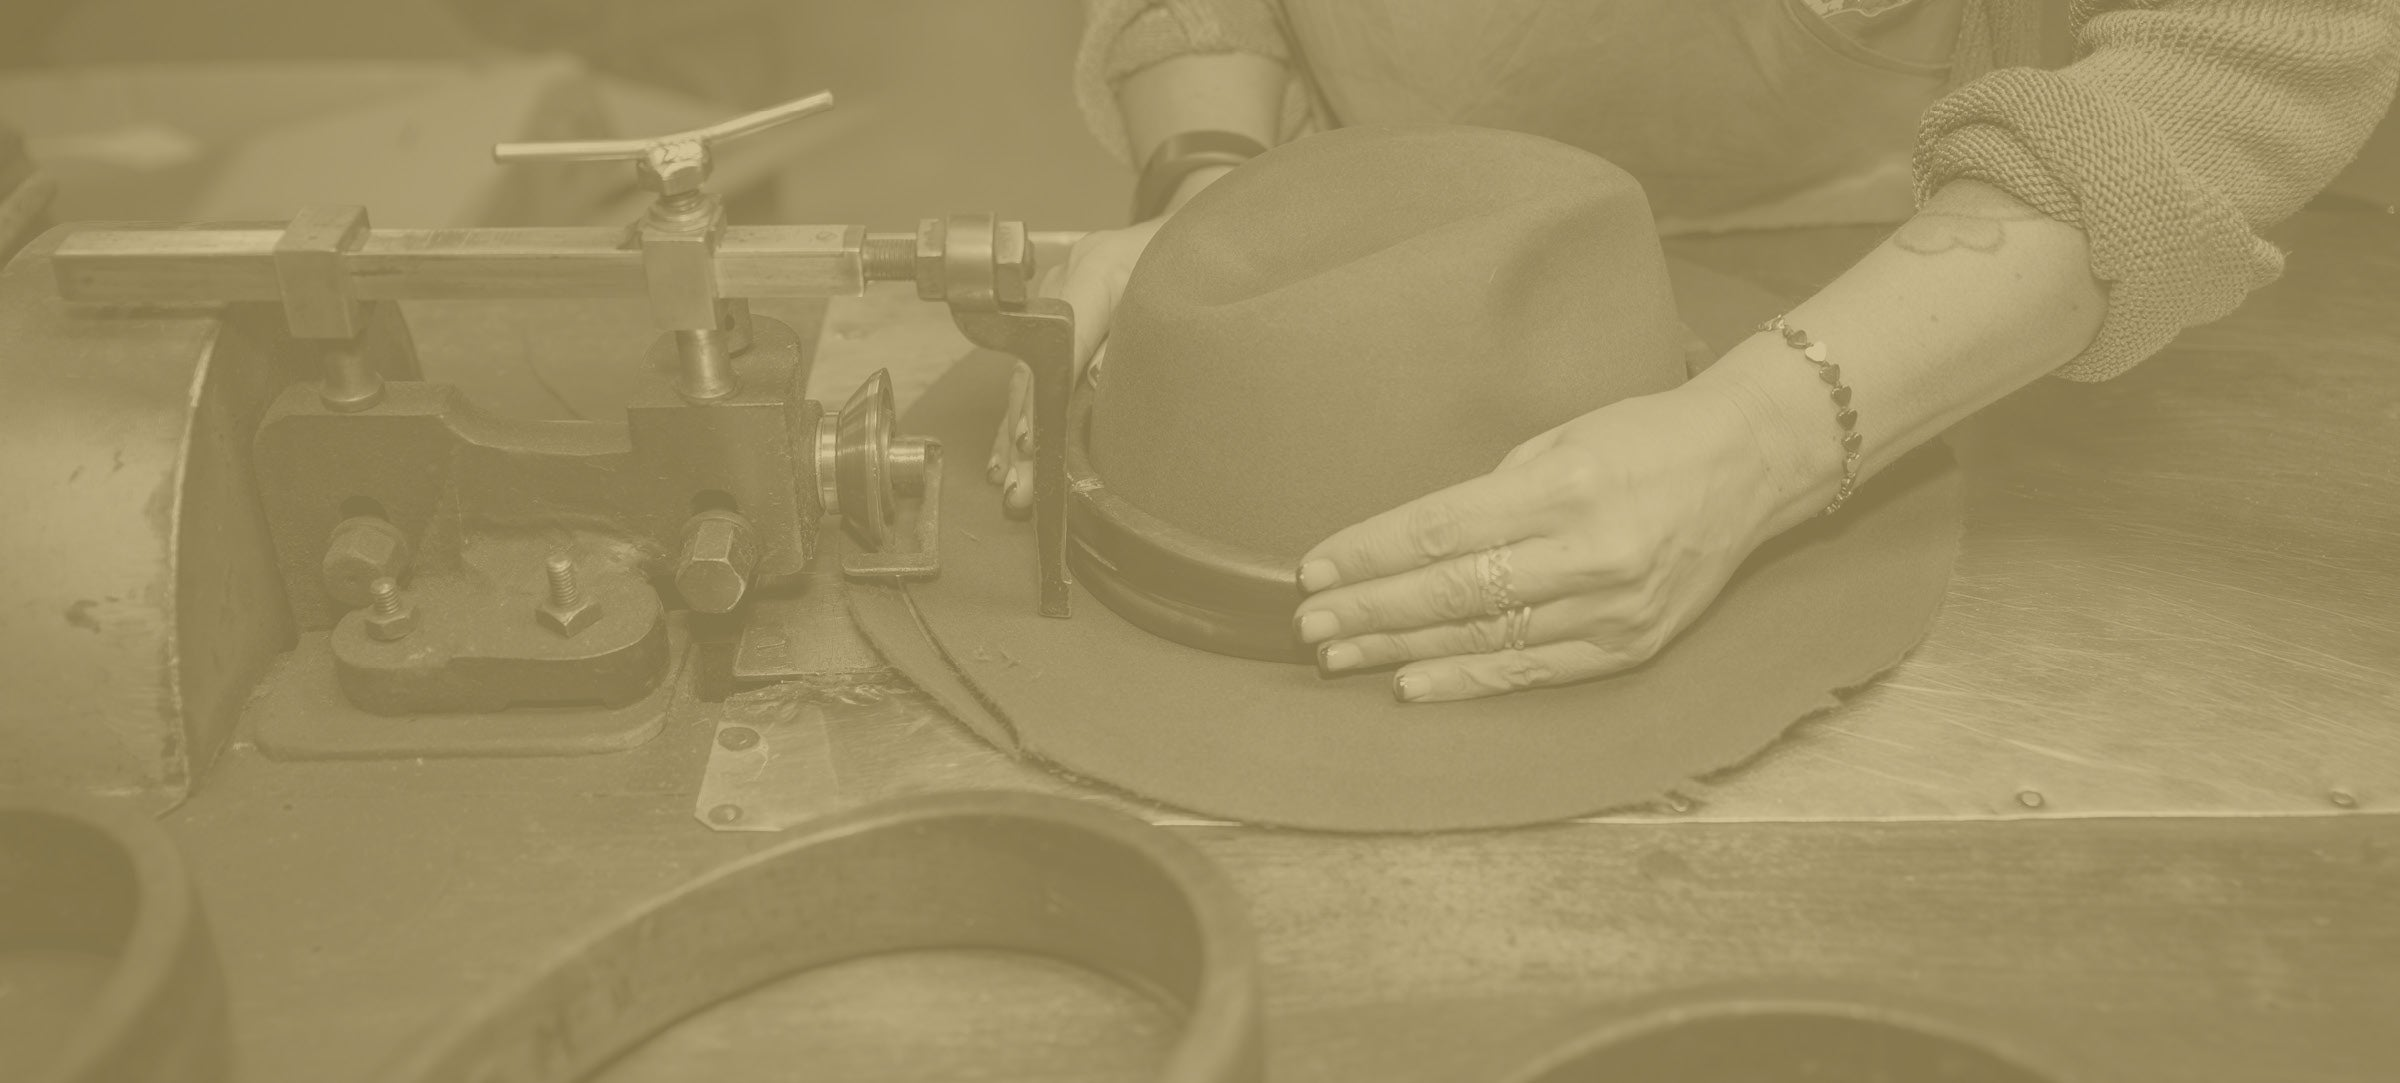 Borsalino fedora hat craftsmanship at work